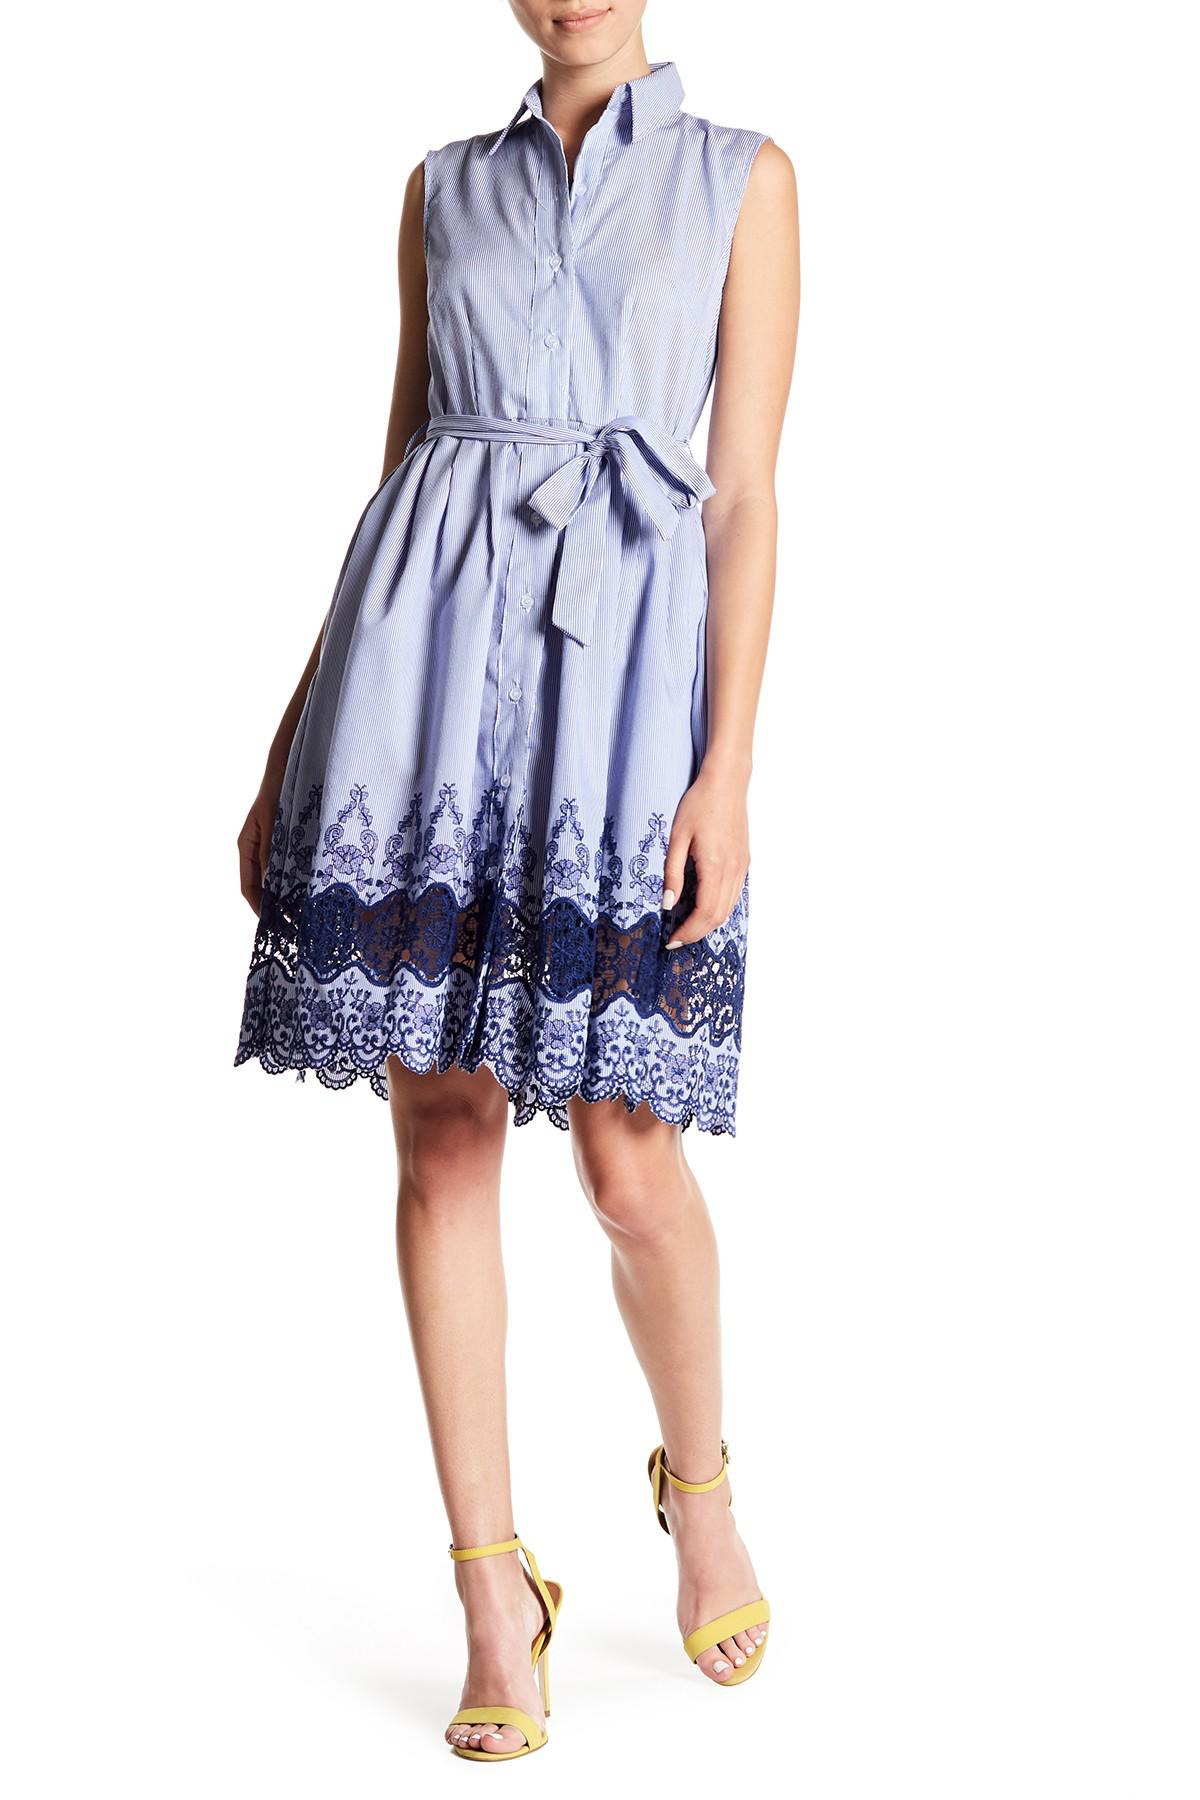 Lyst Sharagano Embroidered Sleeveless Shirt Dress Petite In Blue